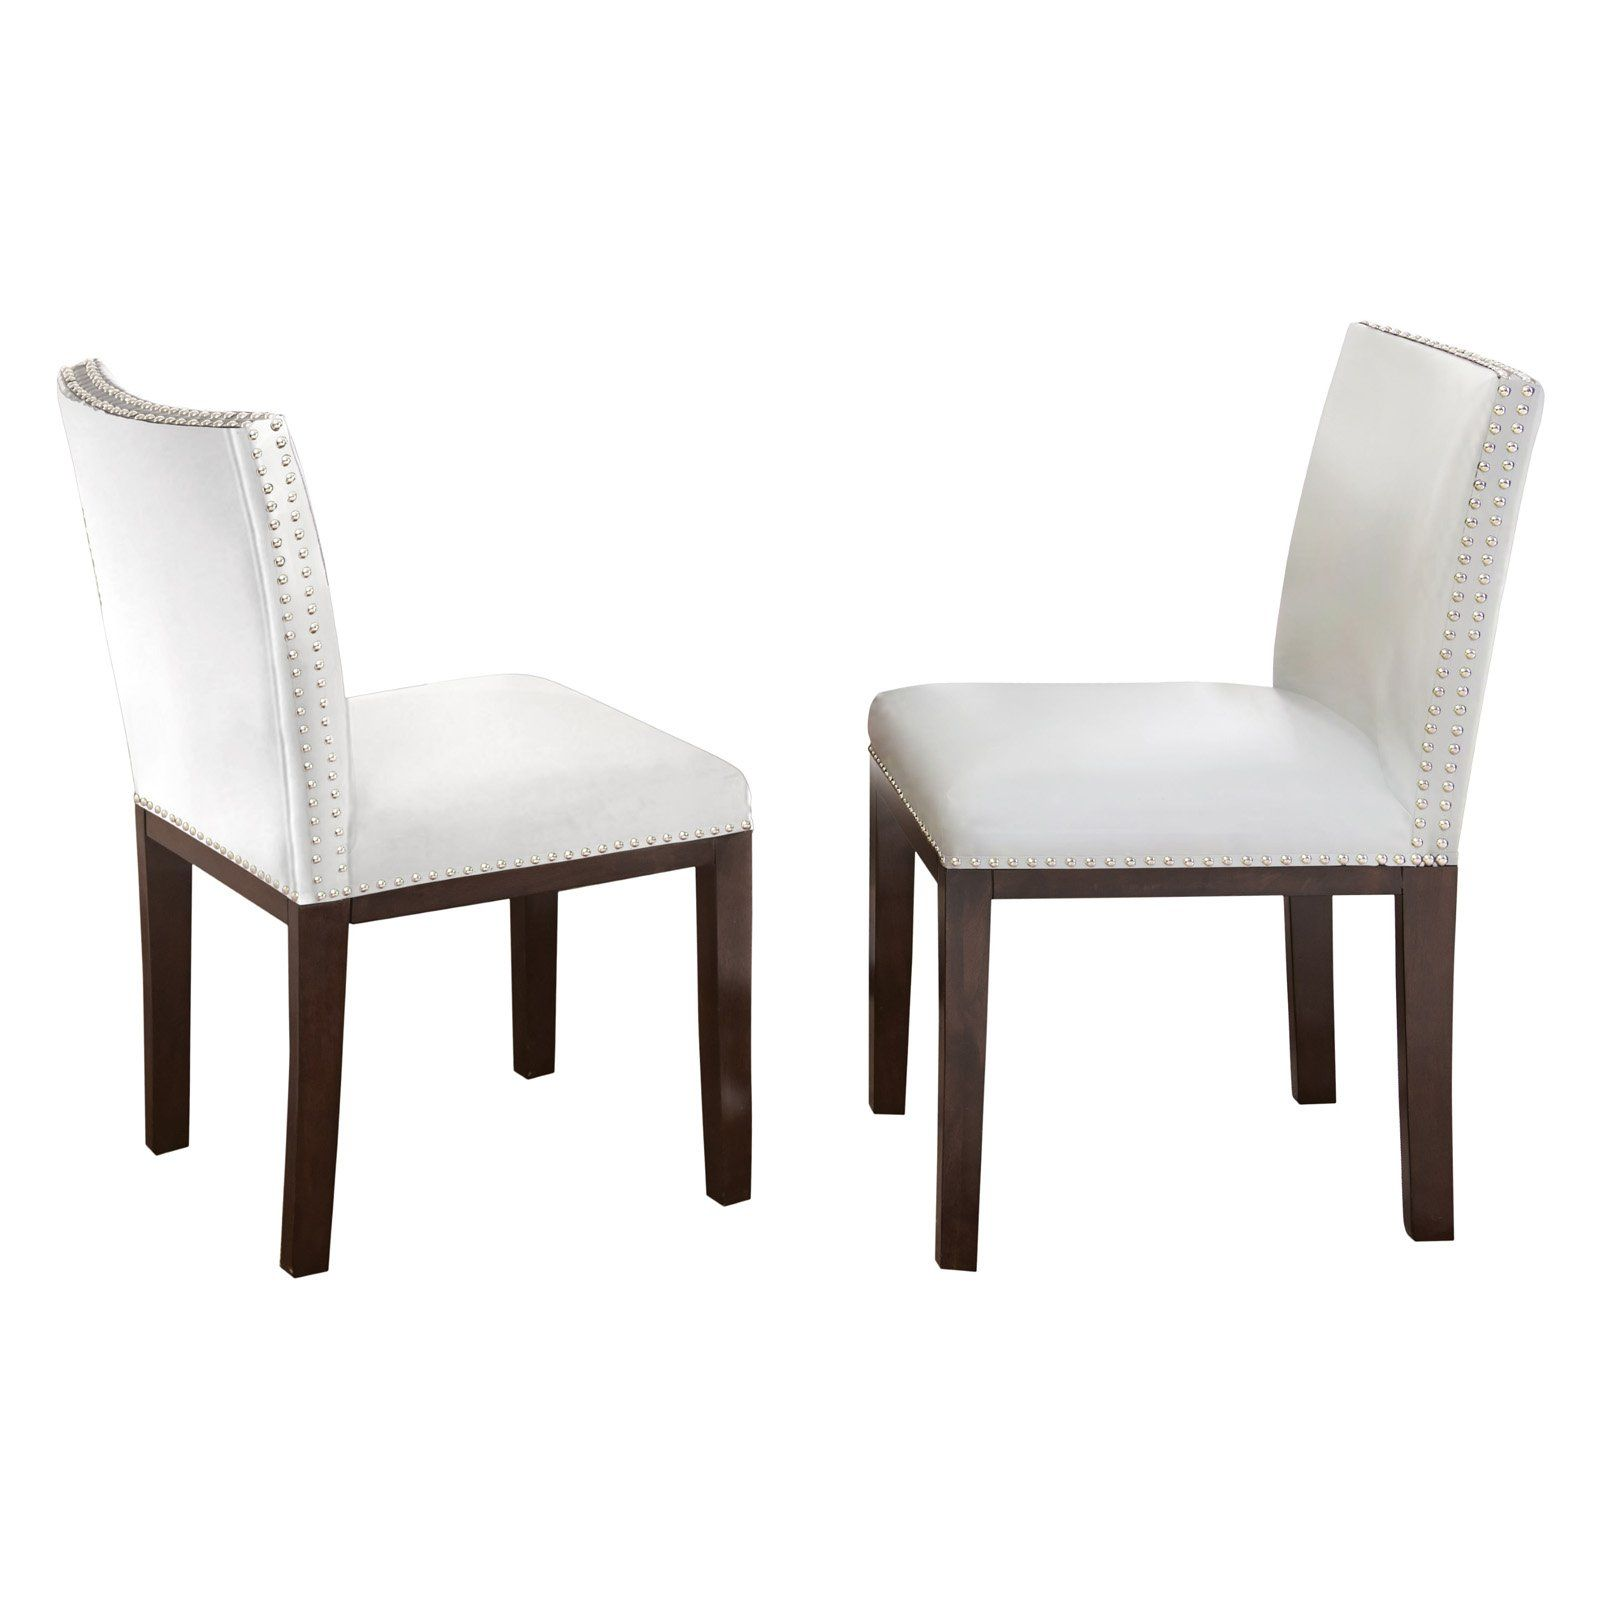 Steve Silver Tiffany Chair Set Of 2 Side Chairs Dining Dining